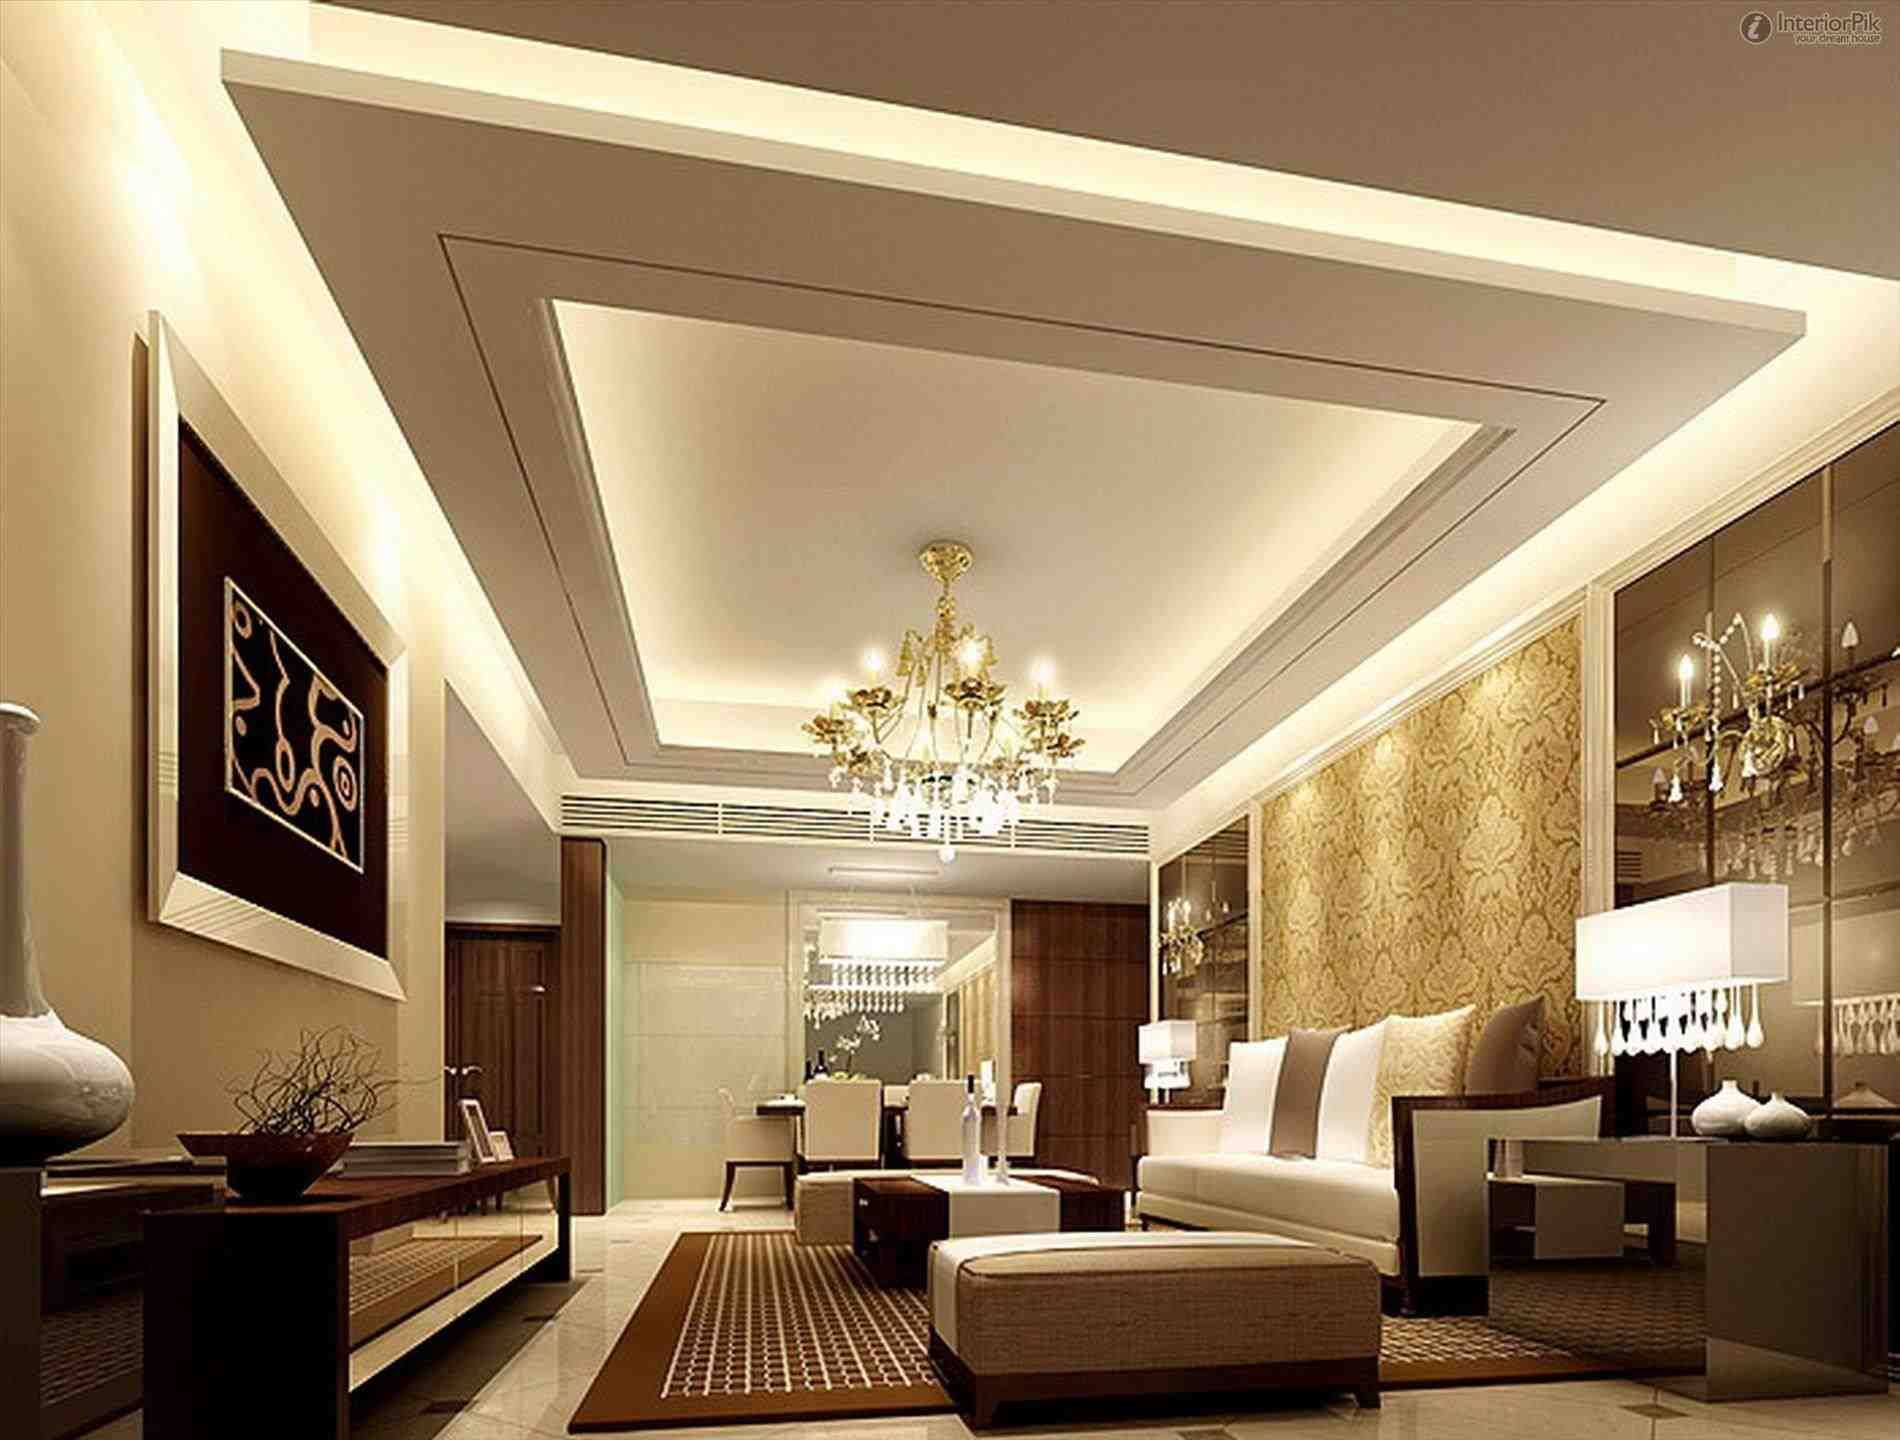 Image Result For Living Room Decor Ideas South Africa House